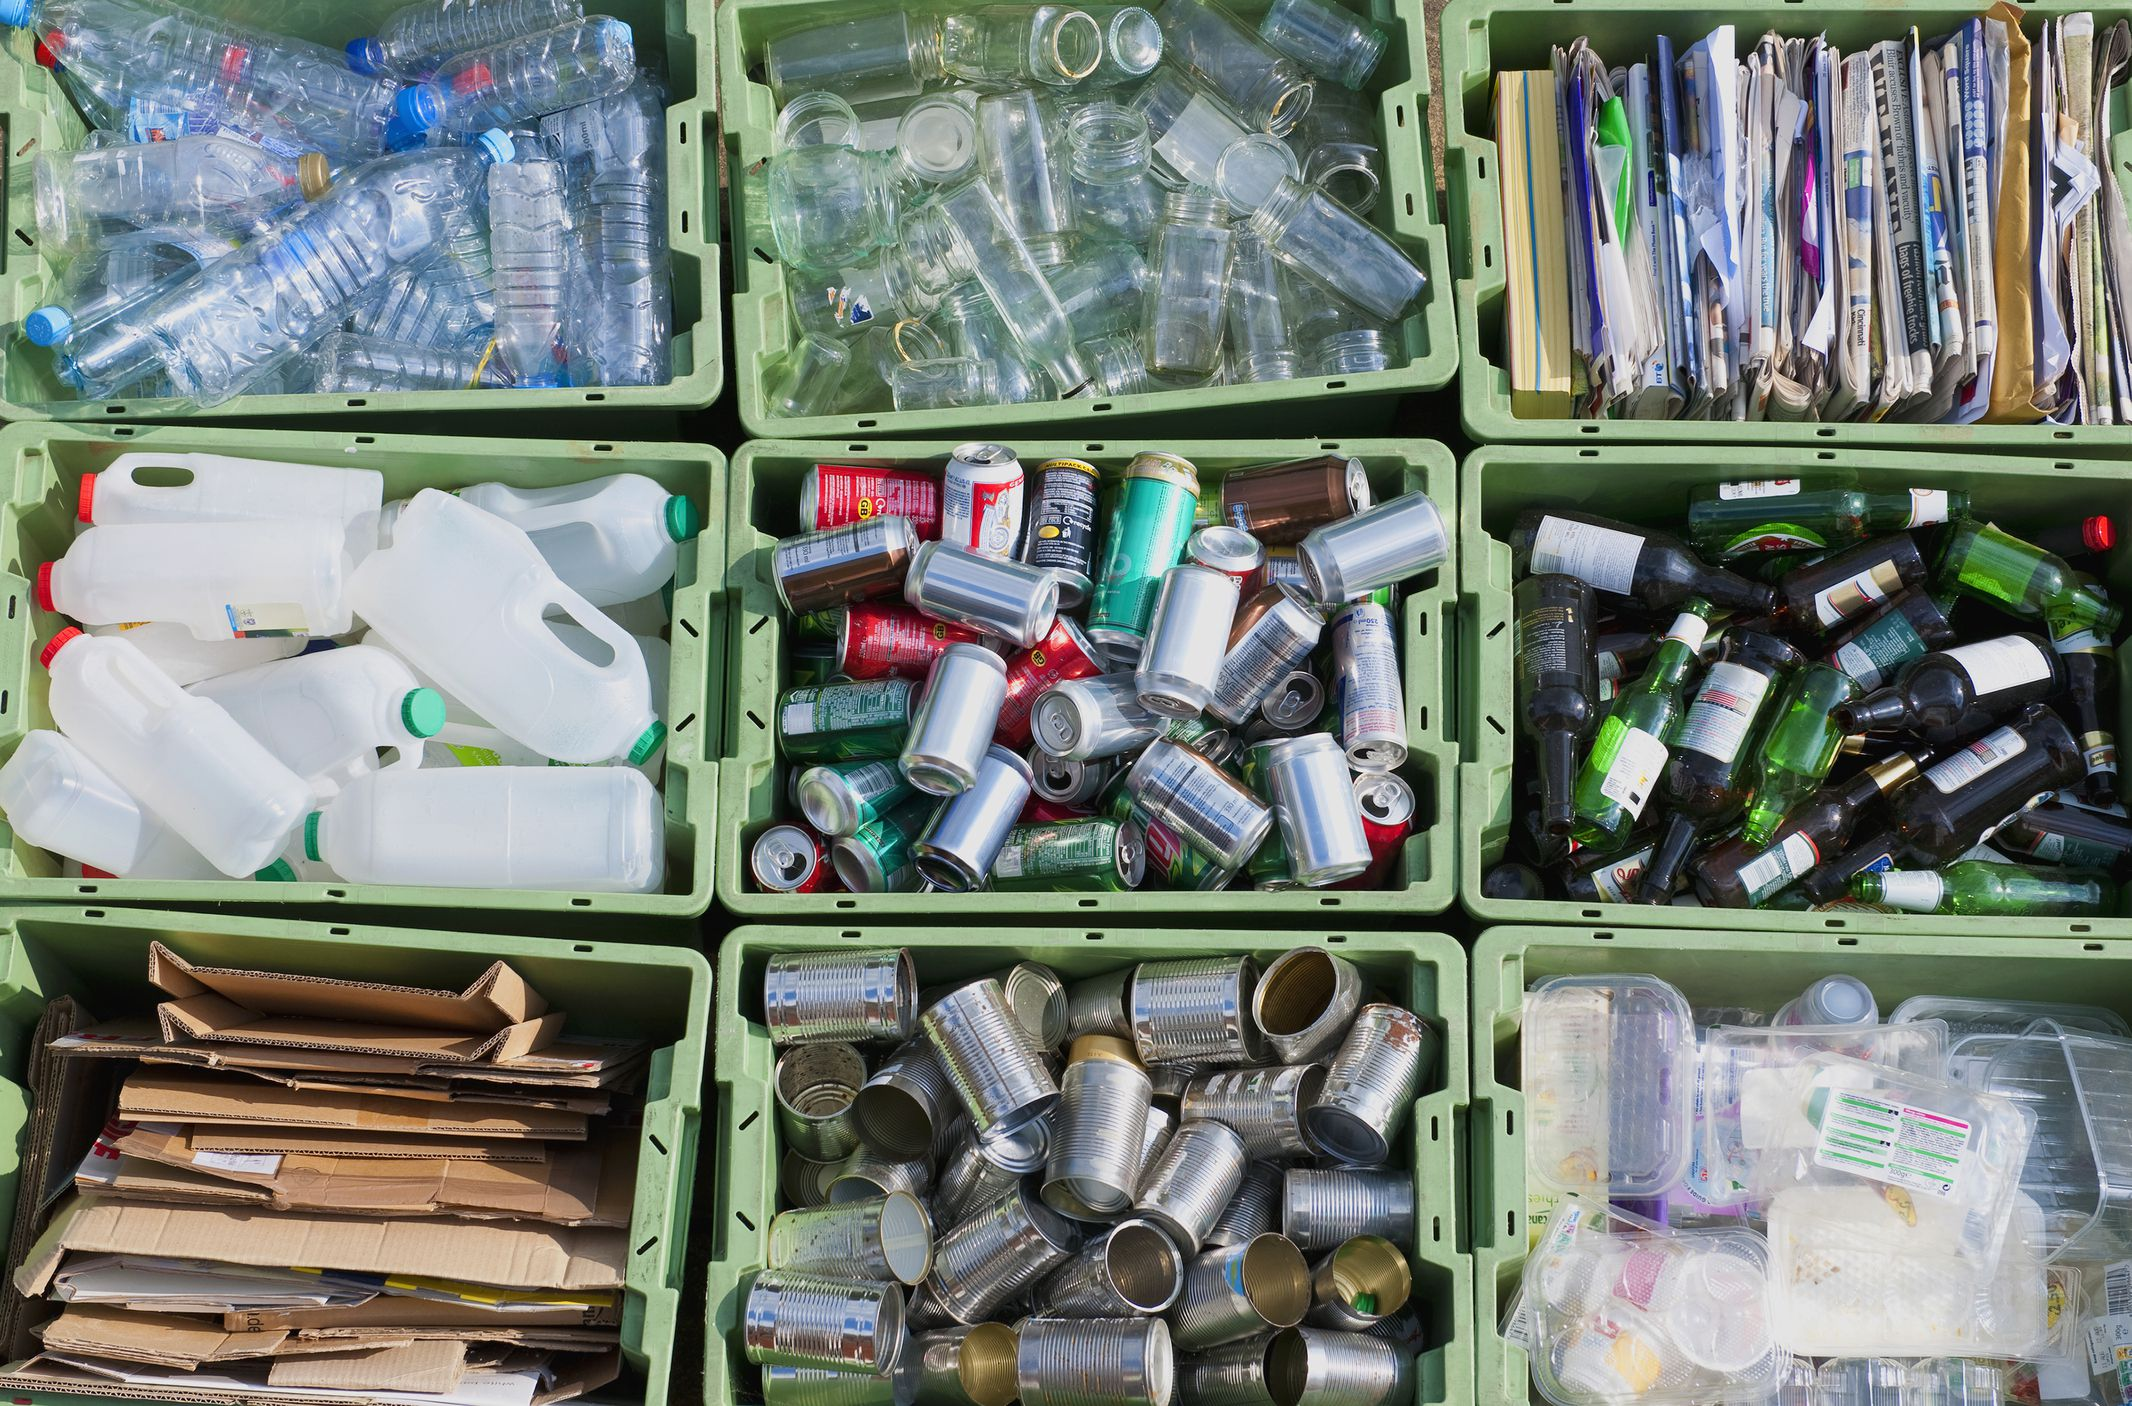 Do the Benefits of Recycling Outweigh the Costs?